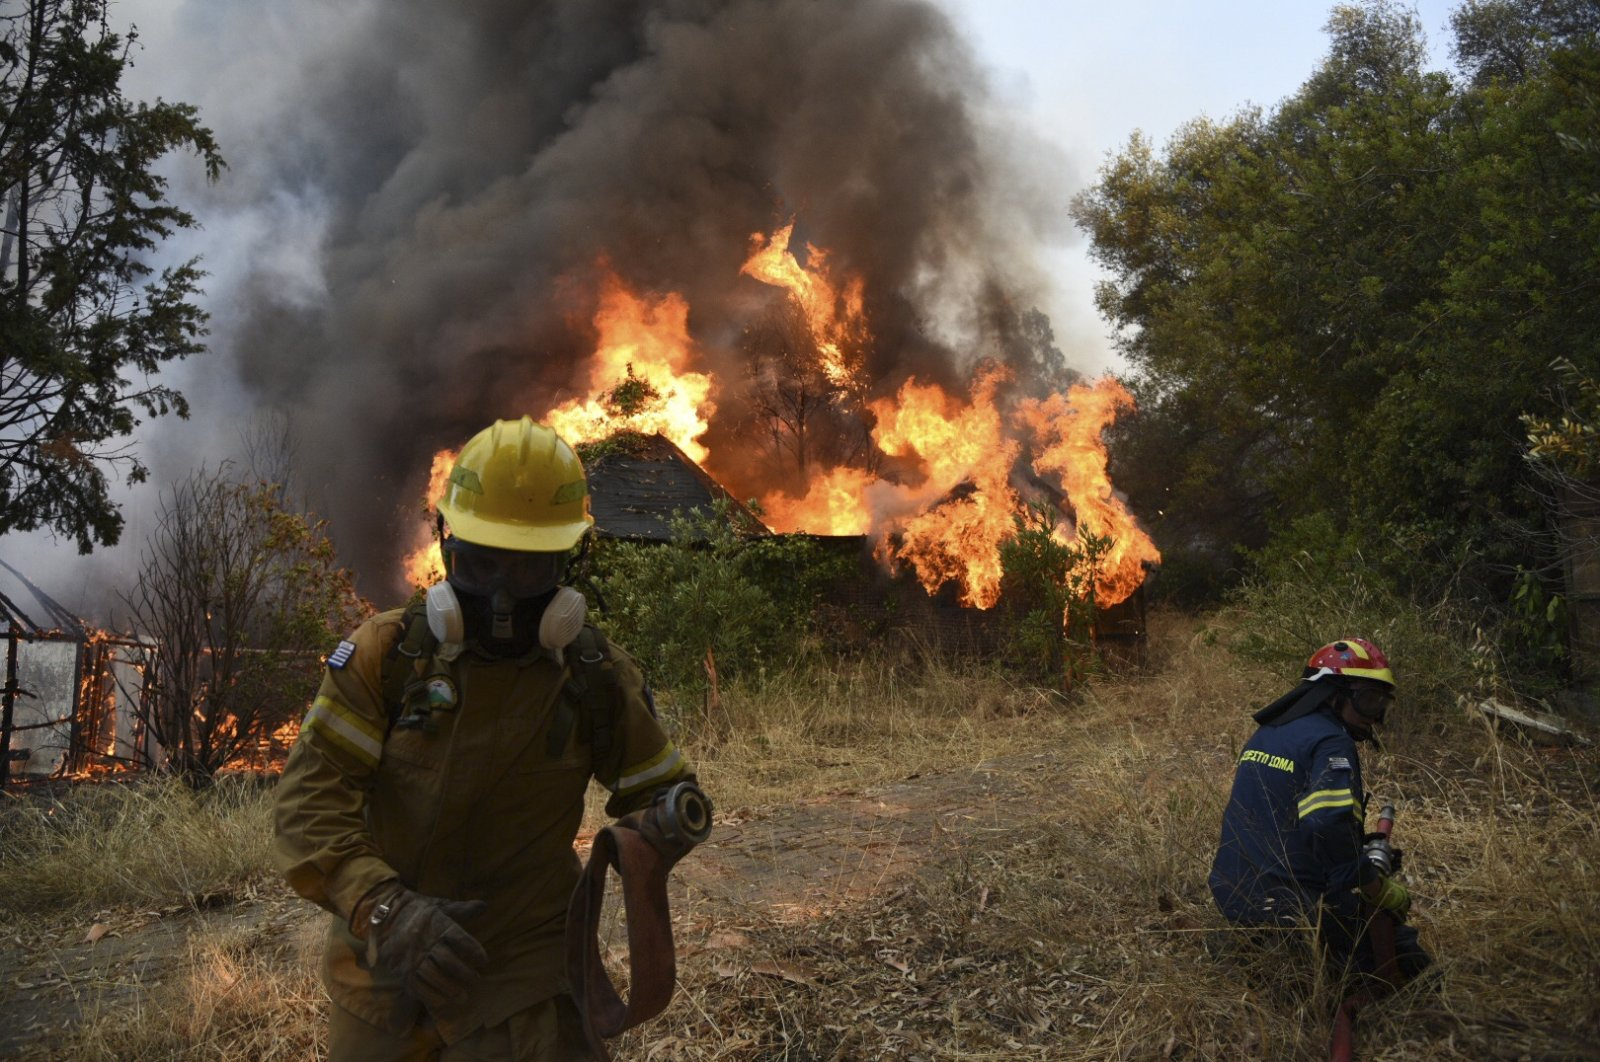 Firefighters operate during a wildfire near Lampiri village, west of Patras, Greece, July 31, 2021. (AP Photo)